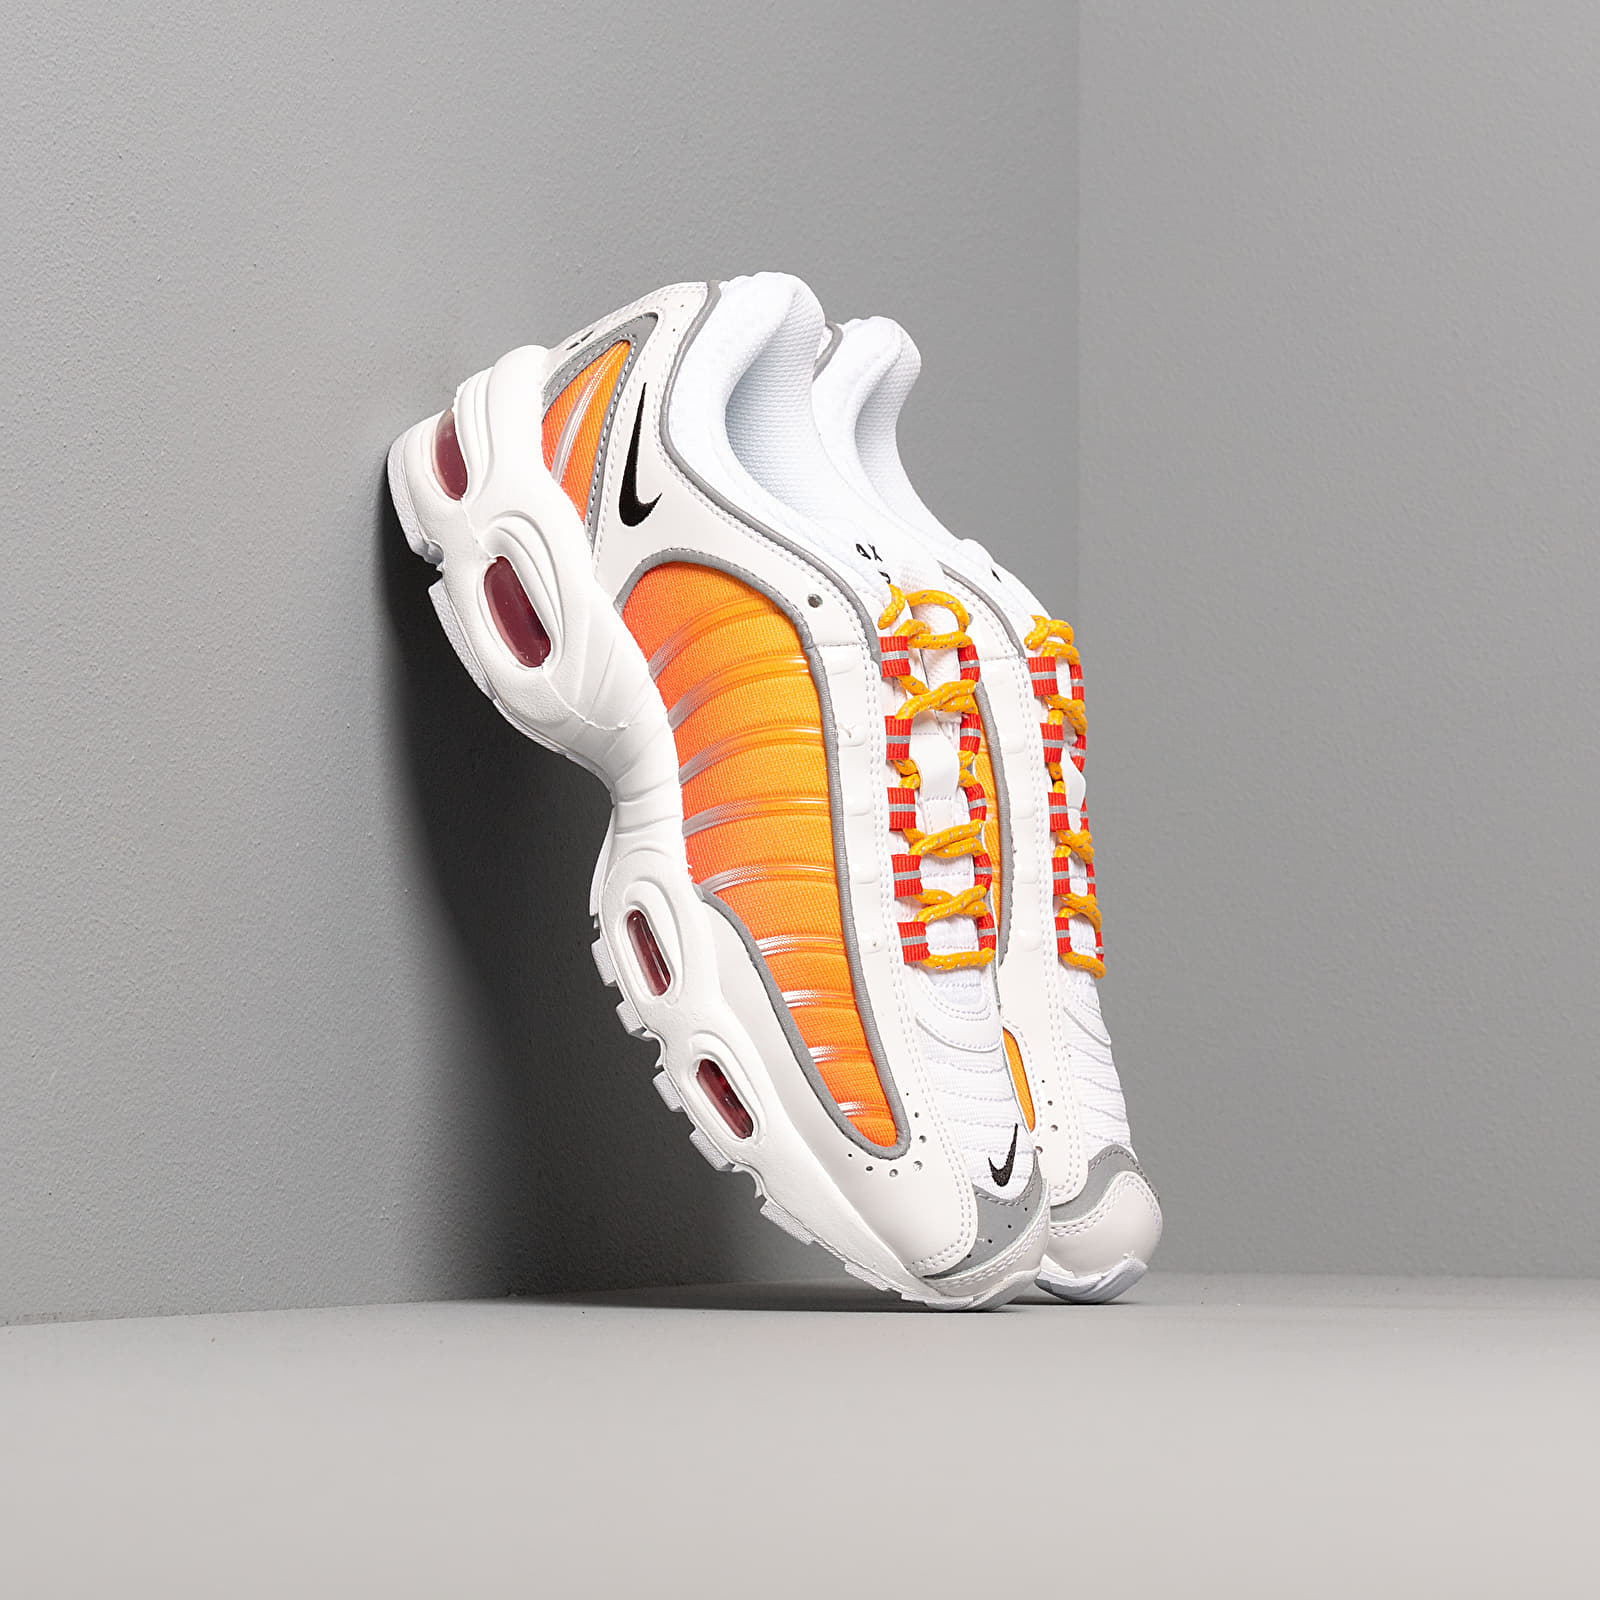 Dámské tenisky a boty Nike W Air Max Tailwind IV NRG White/ Black-University Gold-Habanero Red